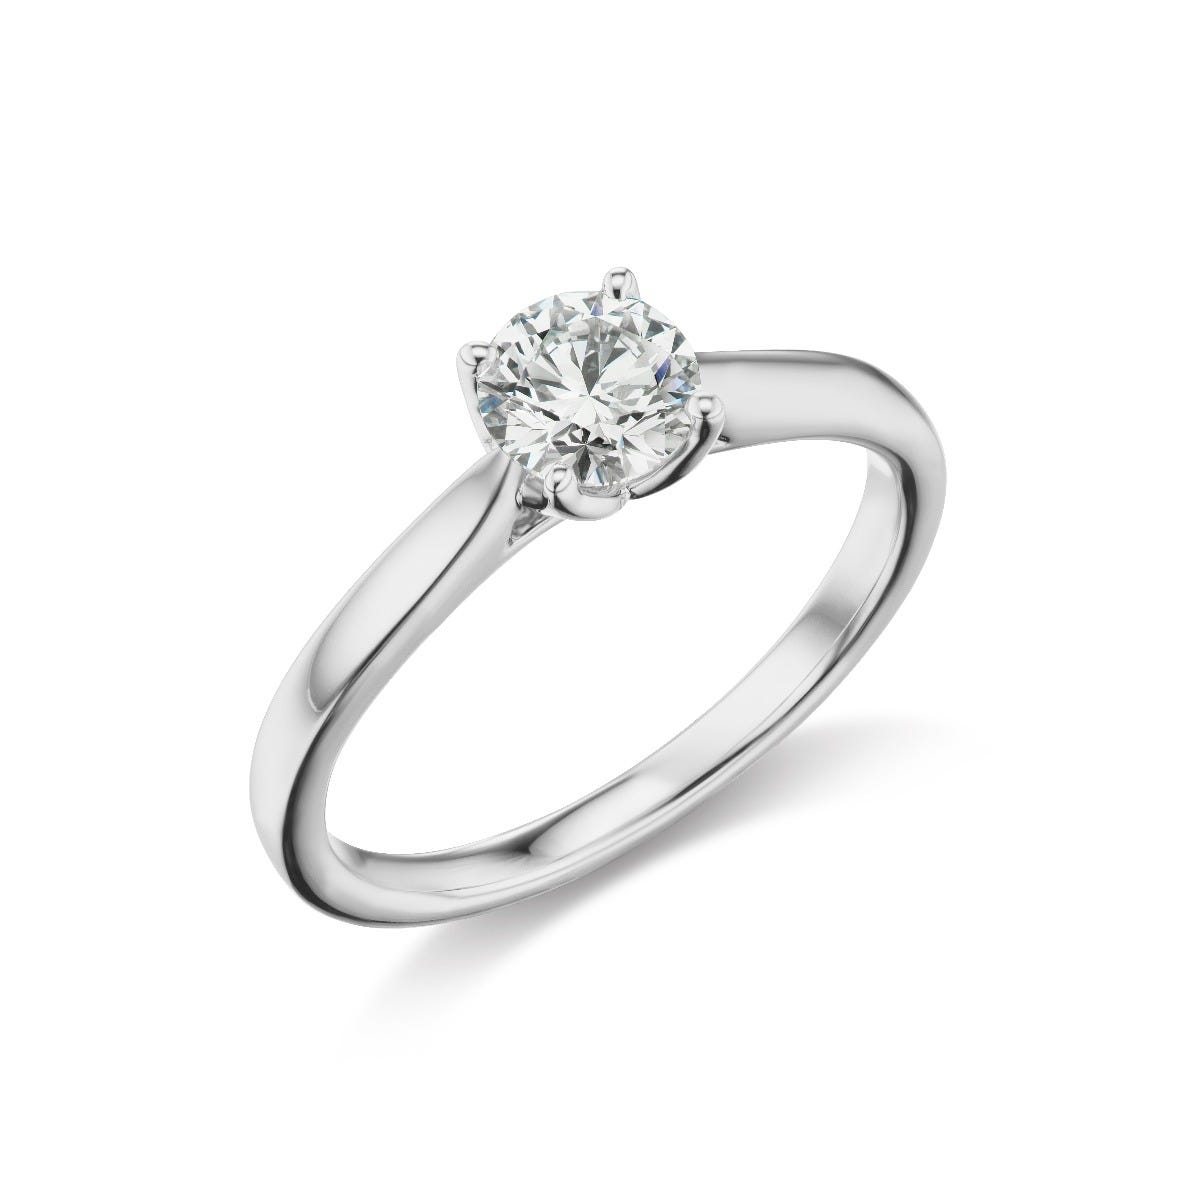 Lab Grown 1/2ct. Diamond Solitiare Engagement Ring in 14k White Gold